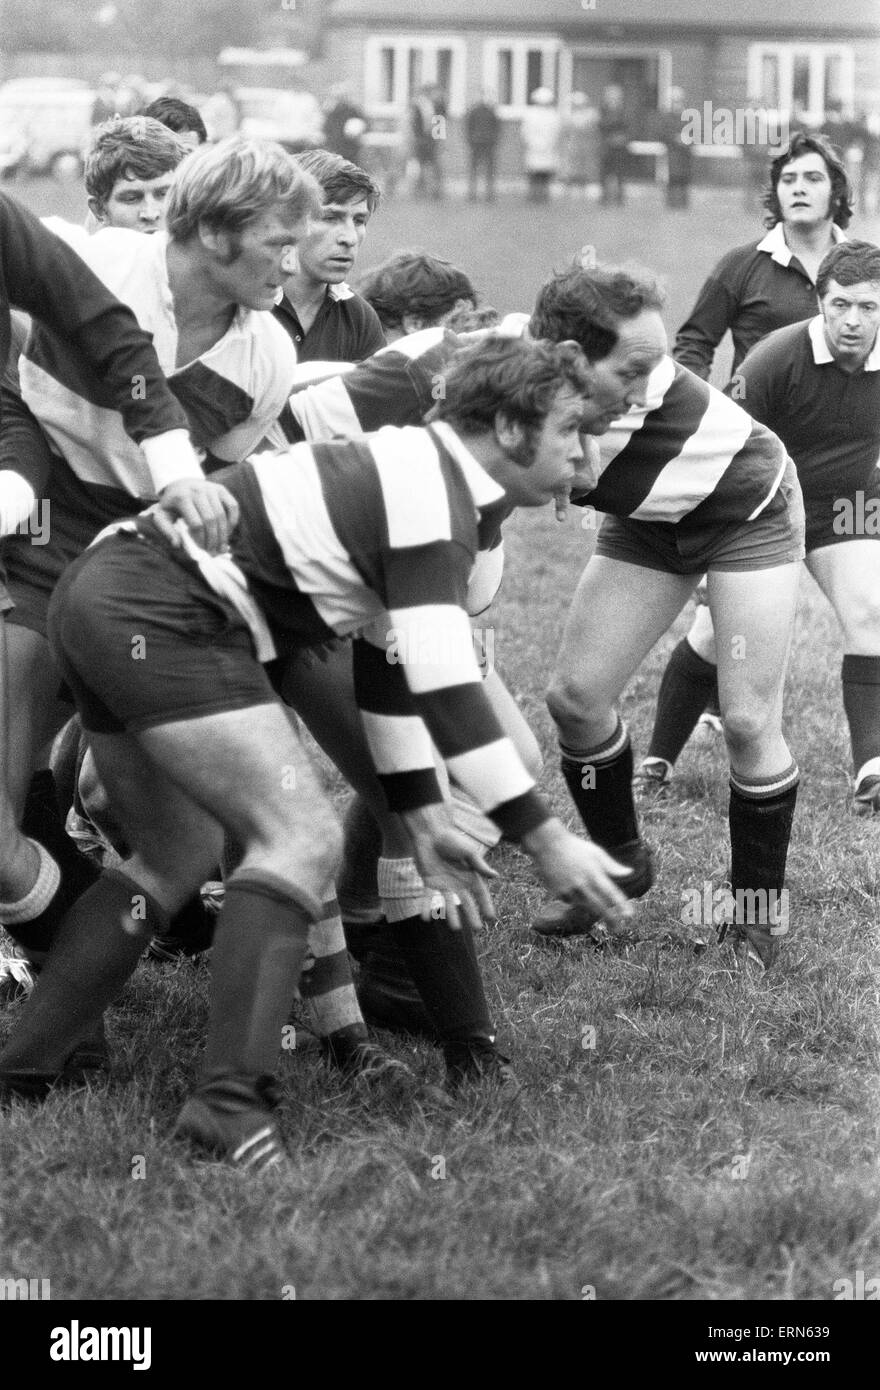 Stoke Old Boys v Phil Judd 15 match de rugby, le 28 septembre 1971 Photo Stock